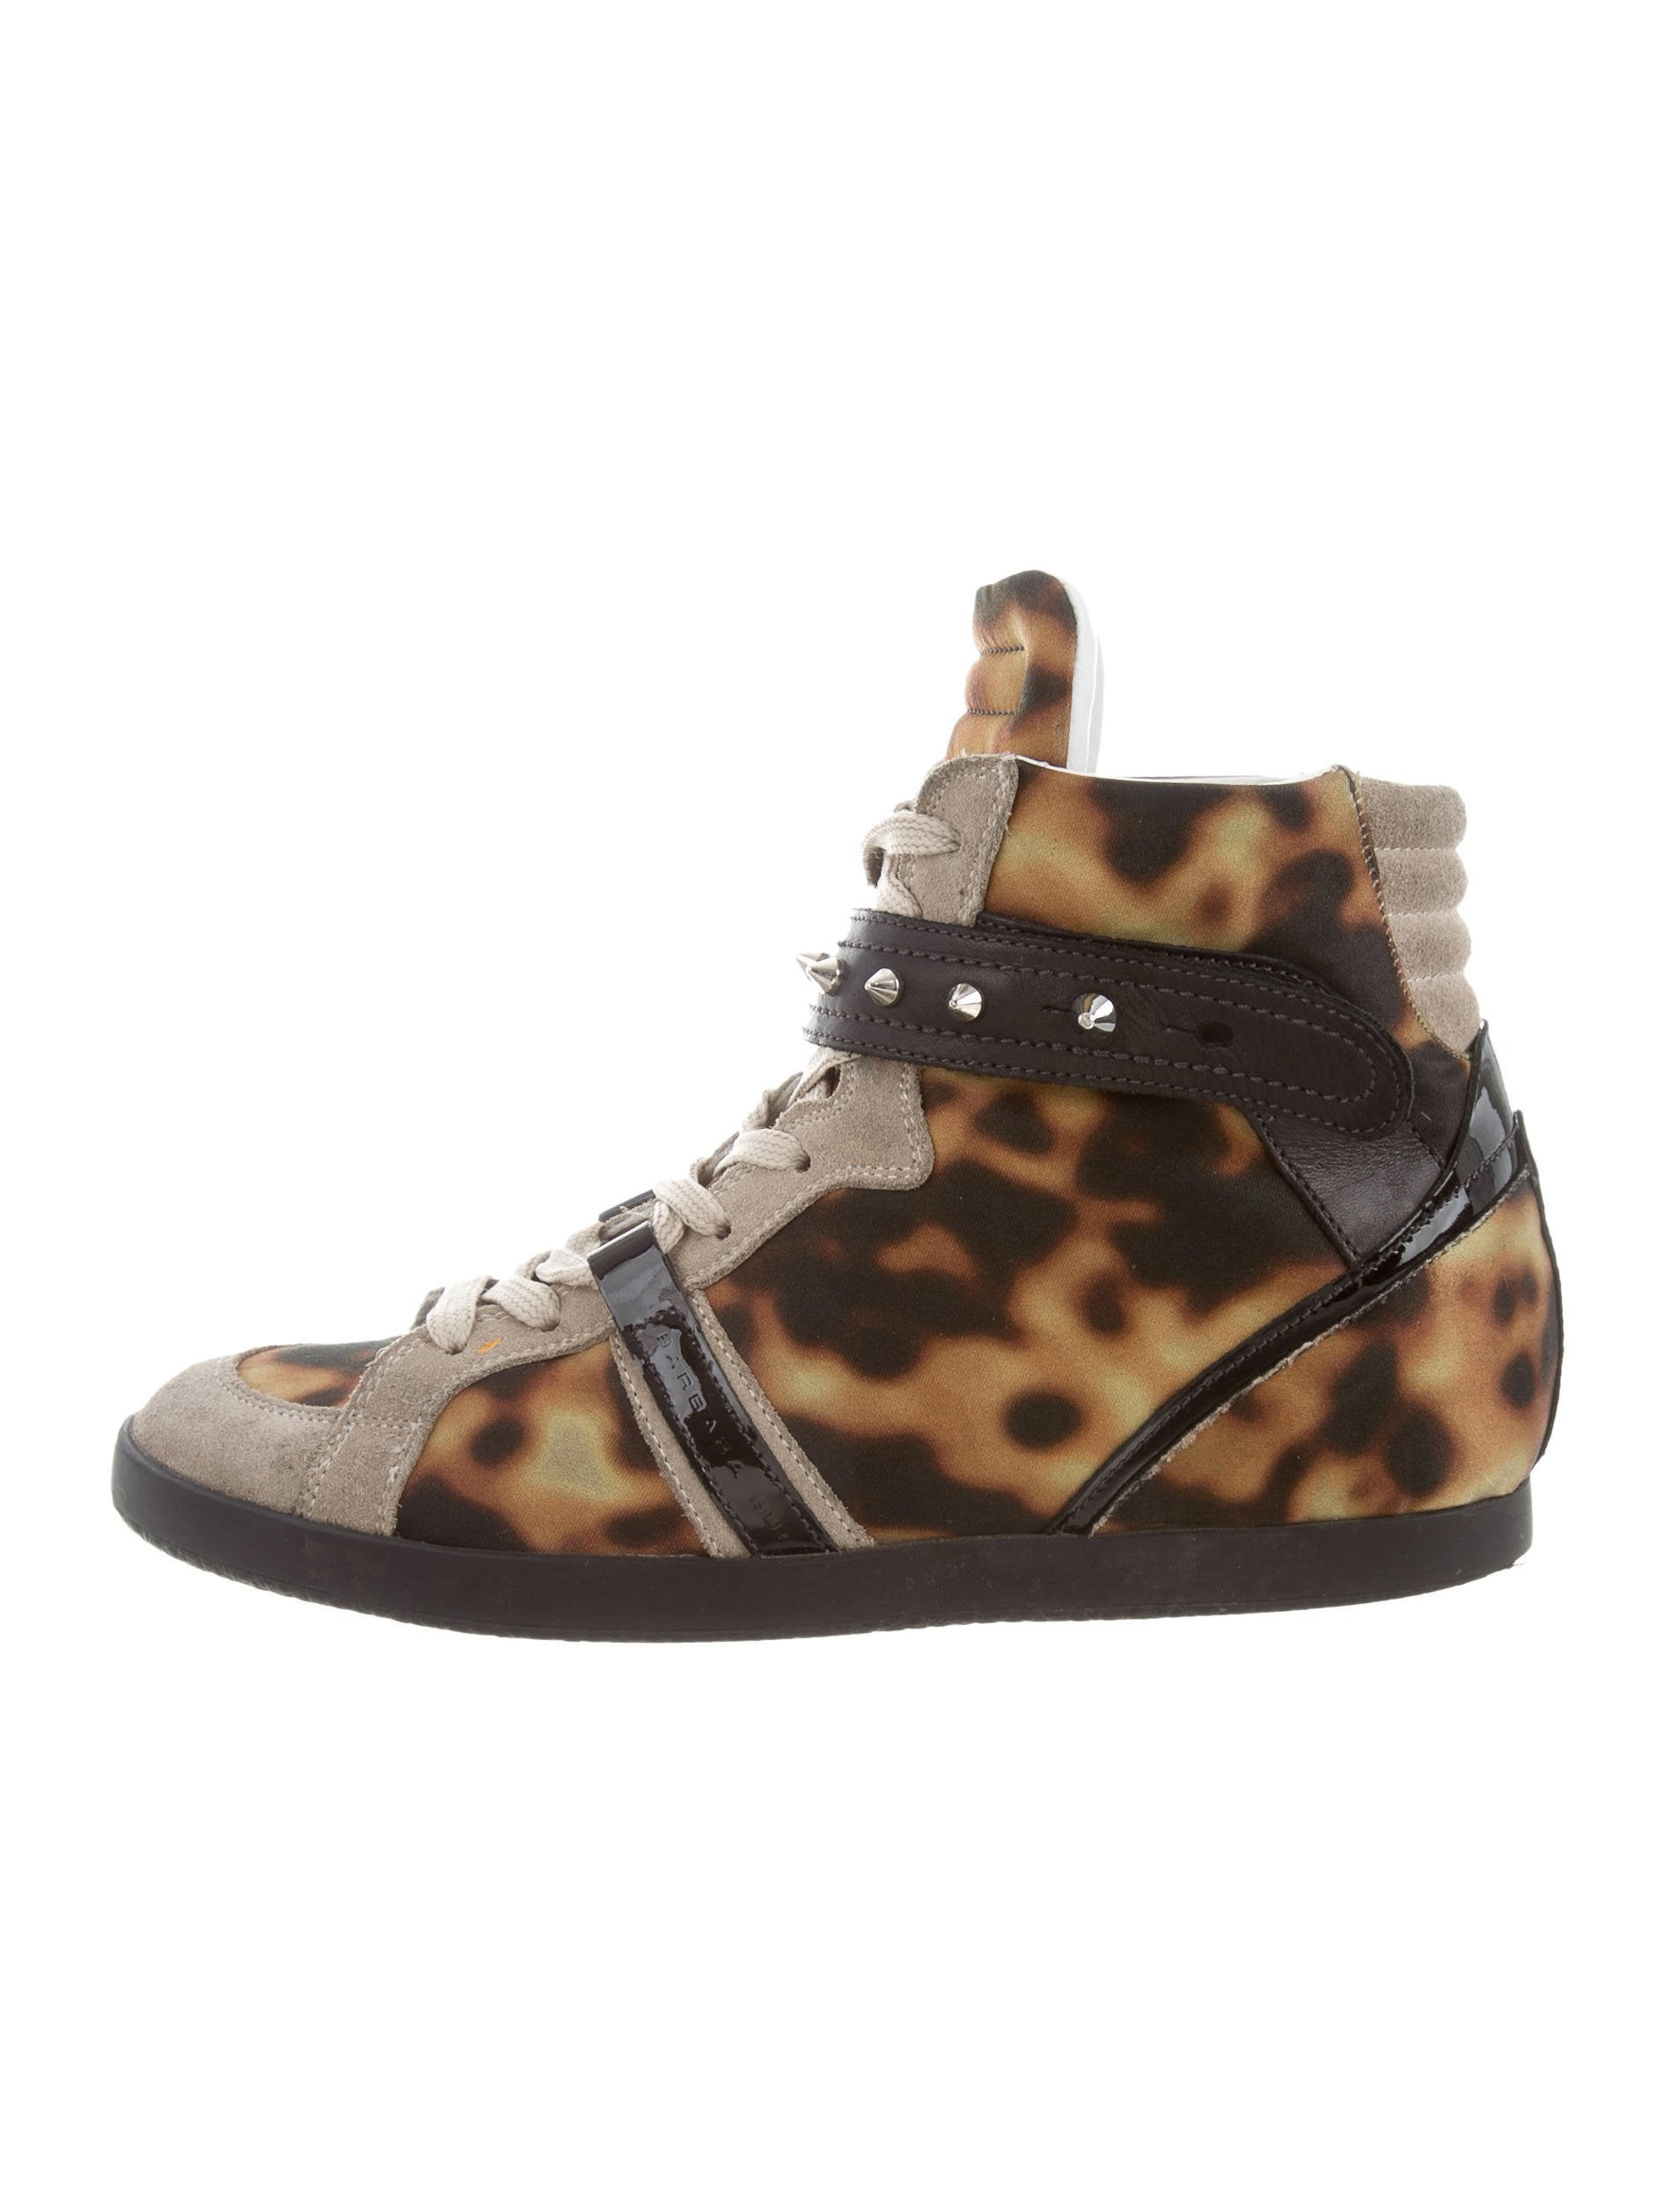 7f3d256da839 Barbara Bui Studded Wedge Sneakers - Shoes - BAB24842